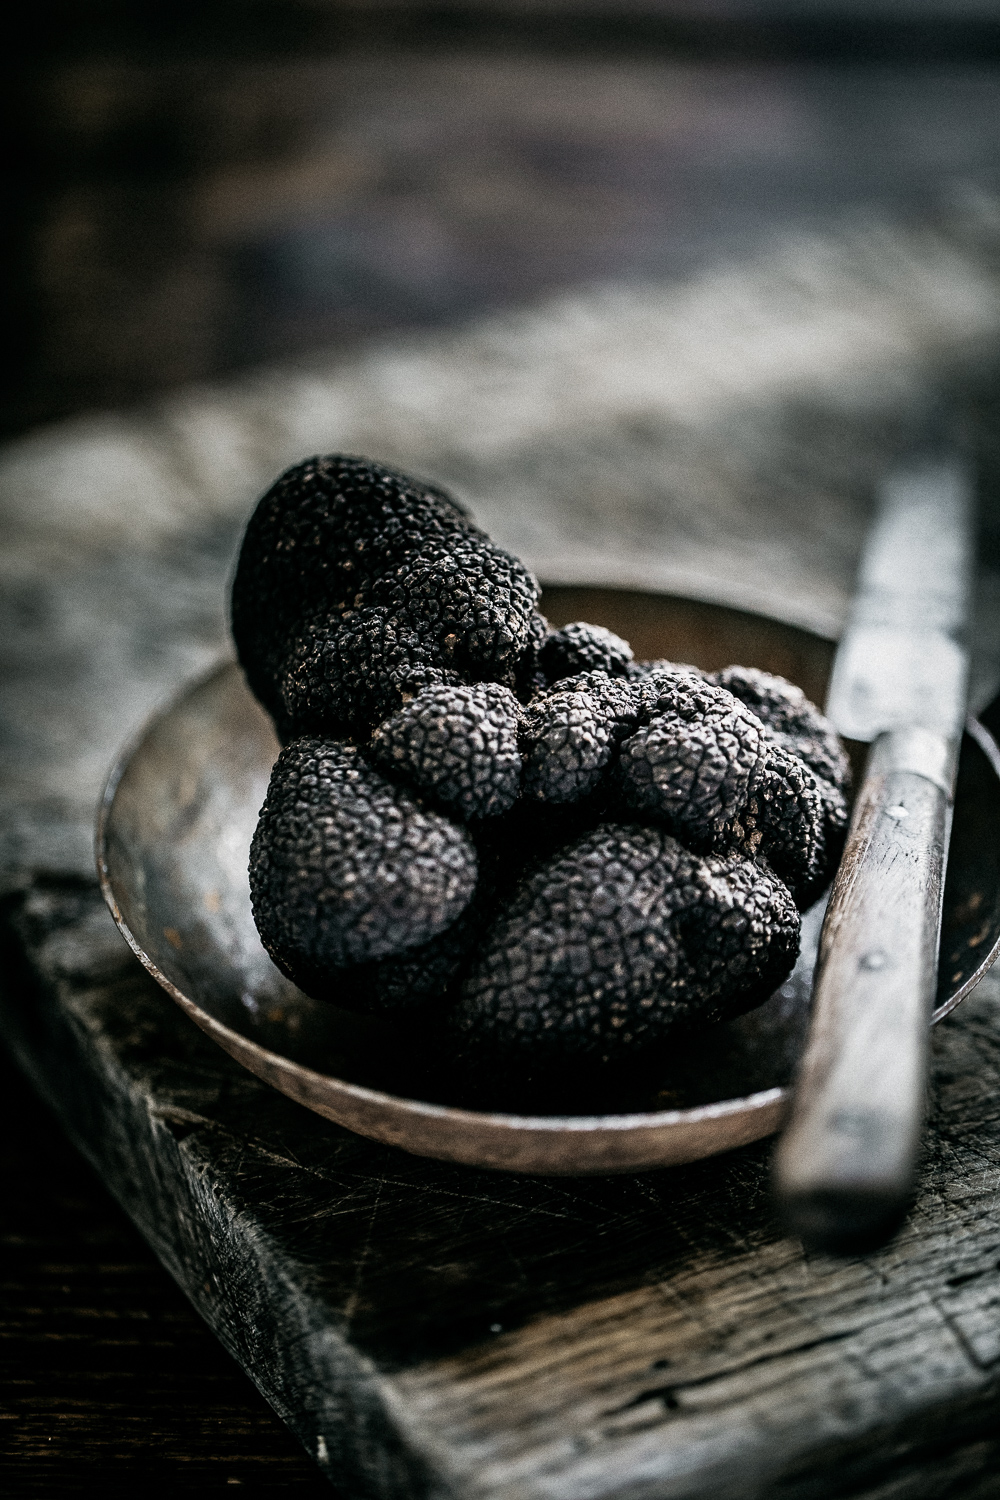 The-Truffle-Farm-Anisa-Sabet-The-Macadames-Food-Travel-Lifestyle-Photographer-82